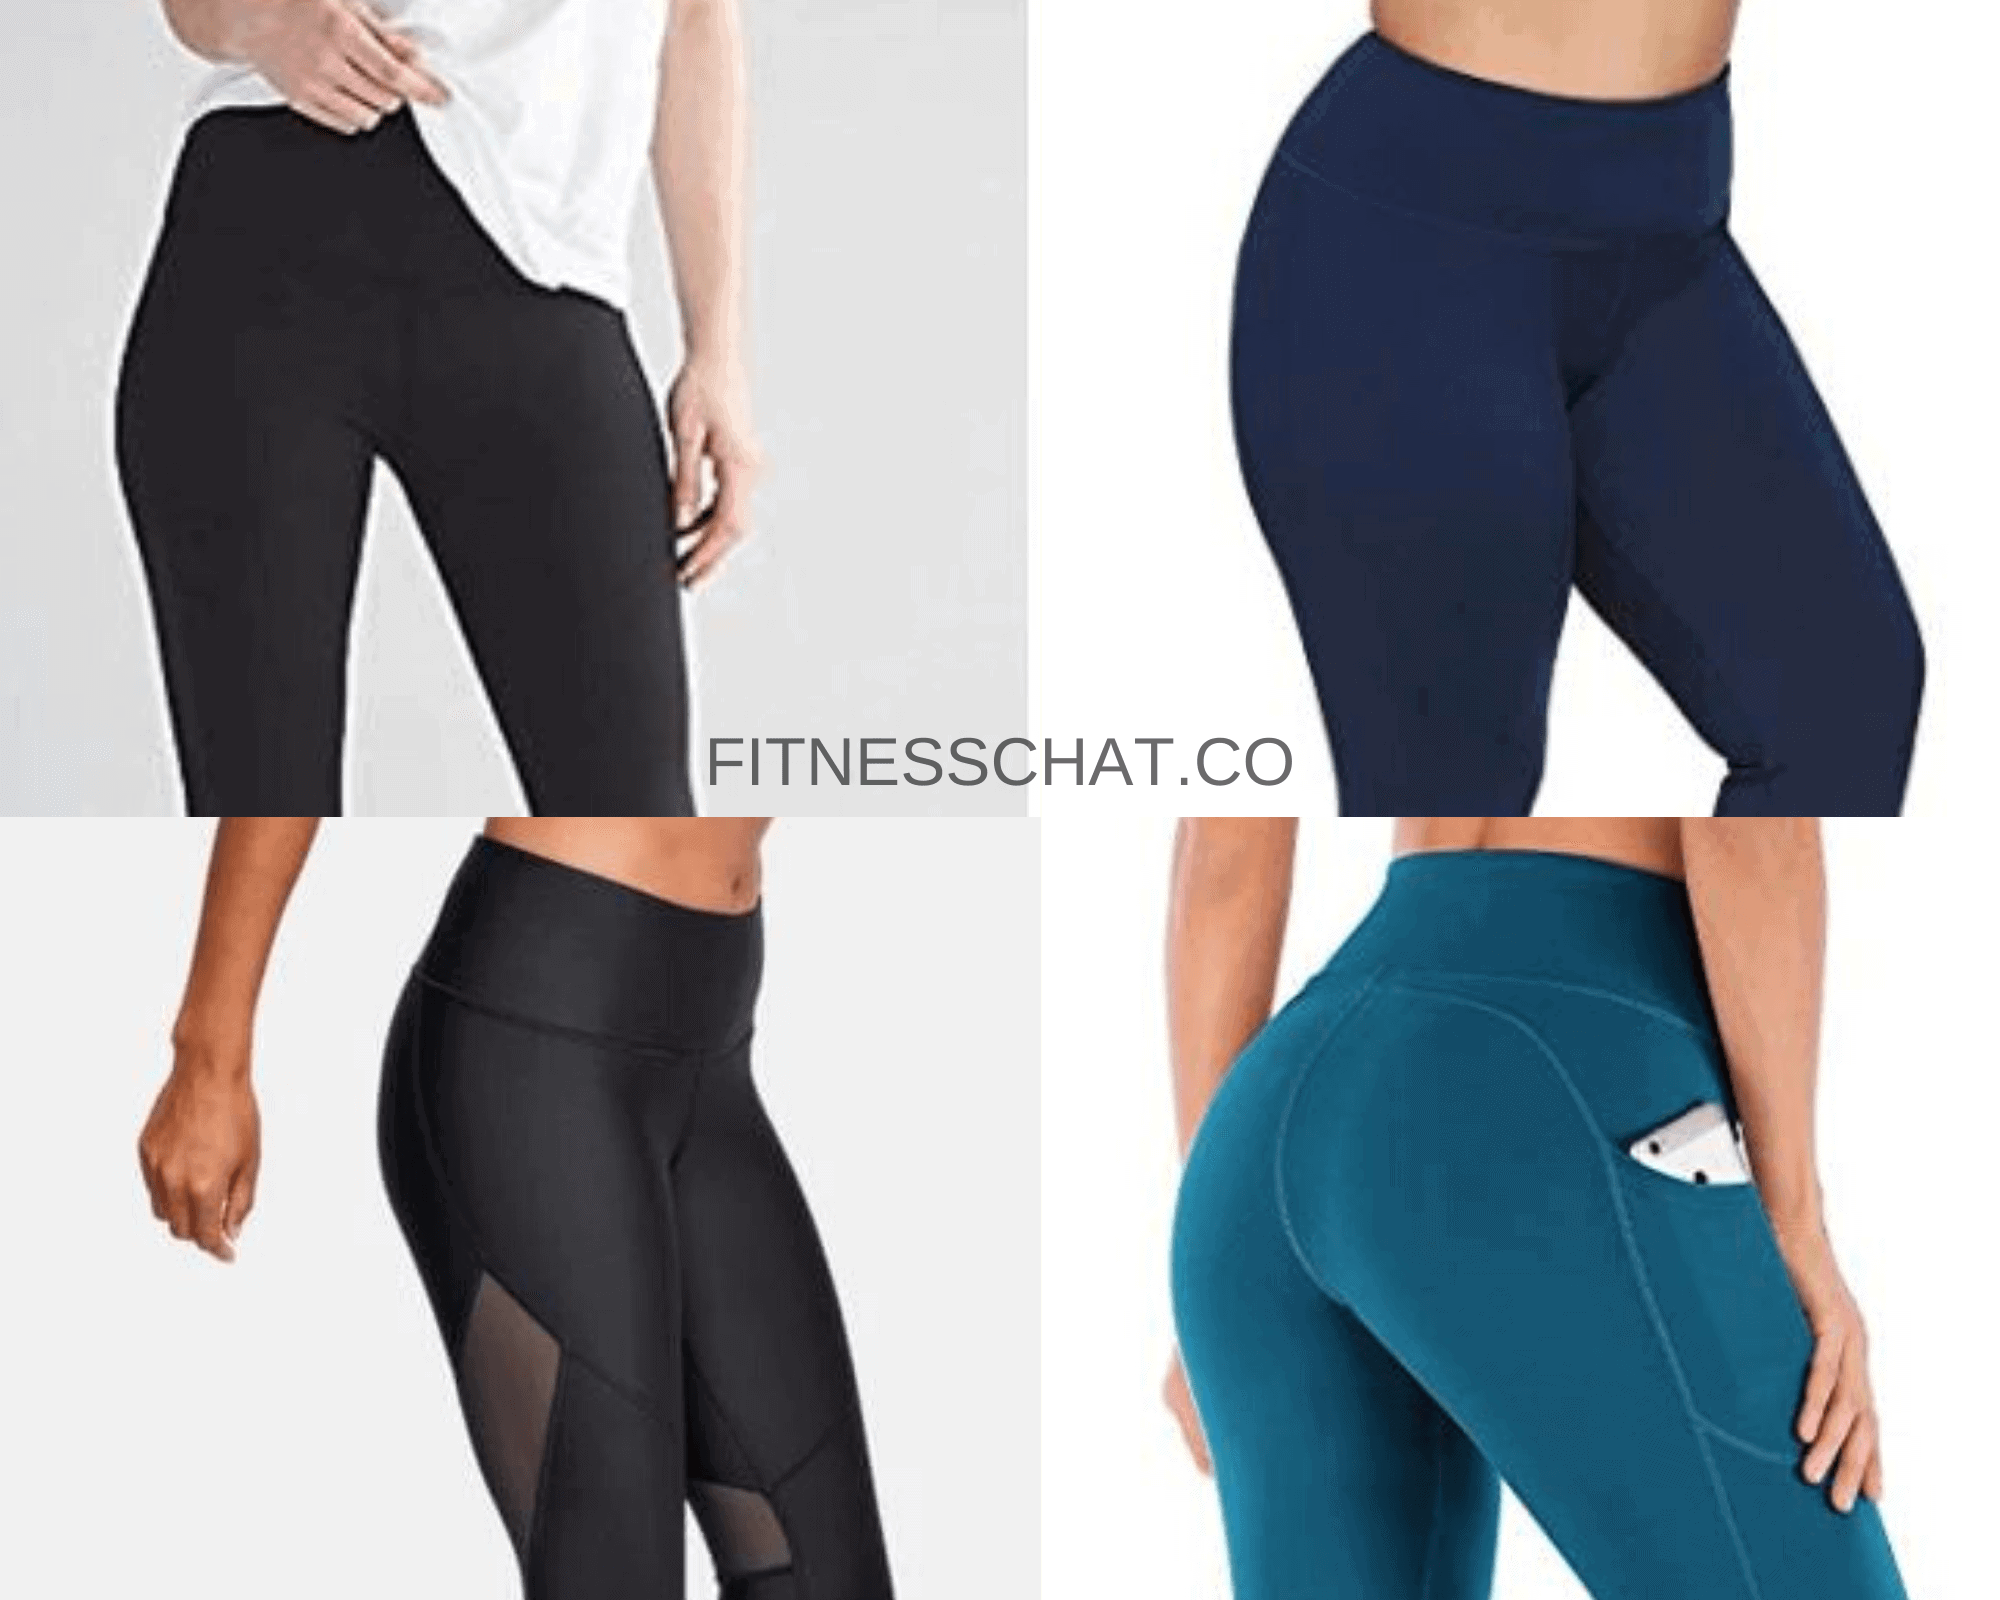 best workout leggings for lifting and best workout leggings that aren't see through